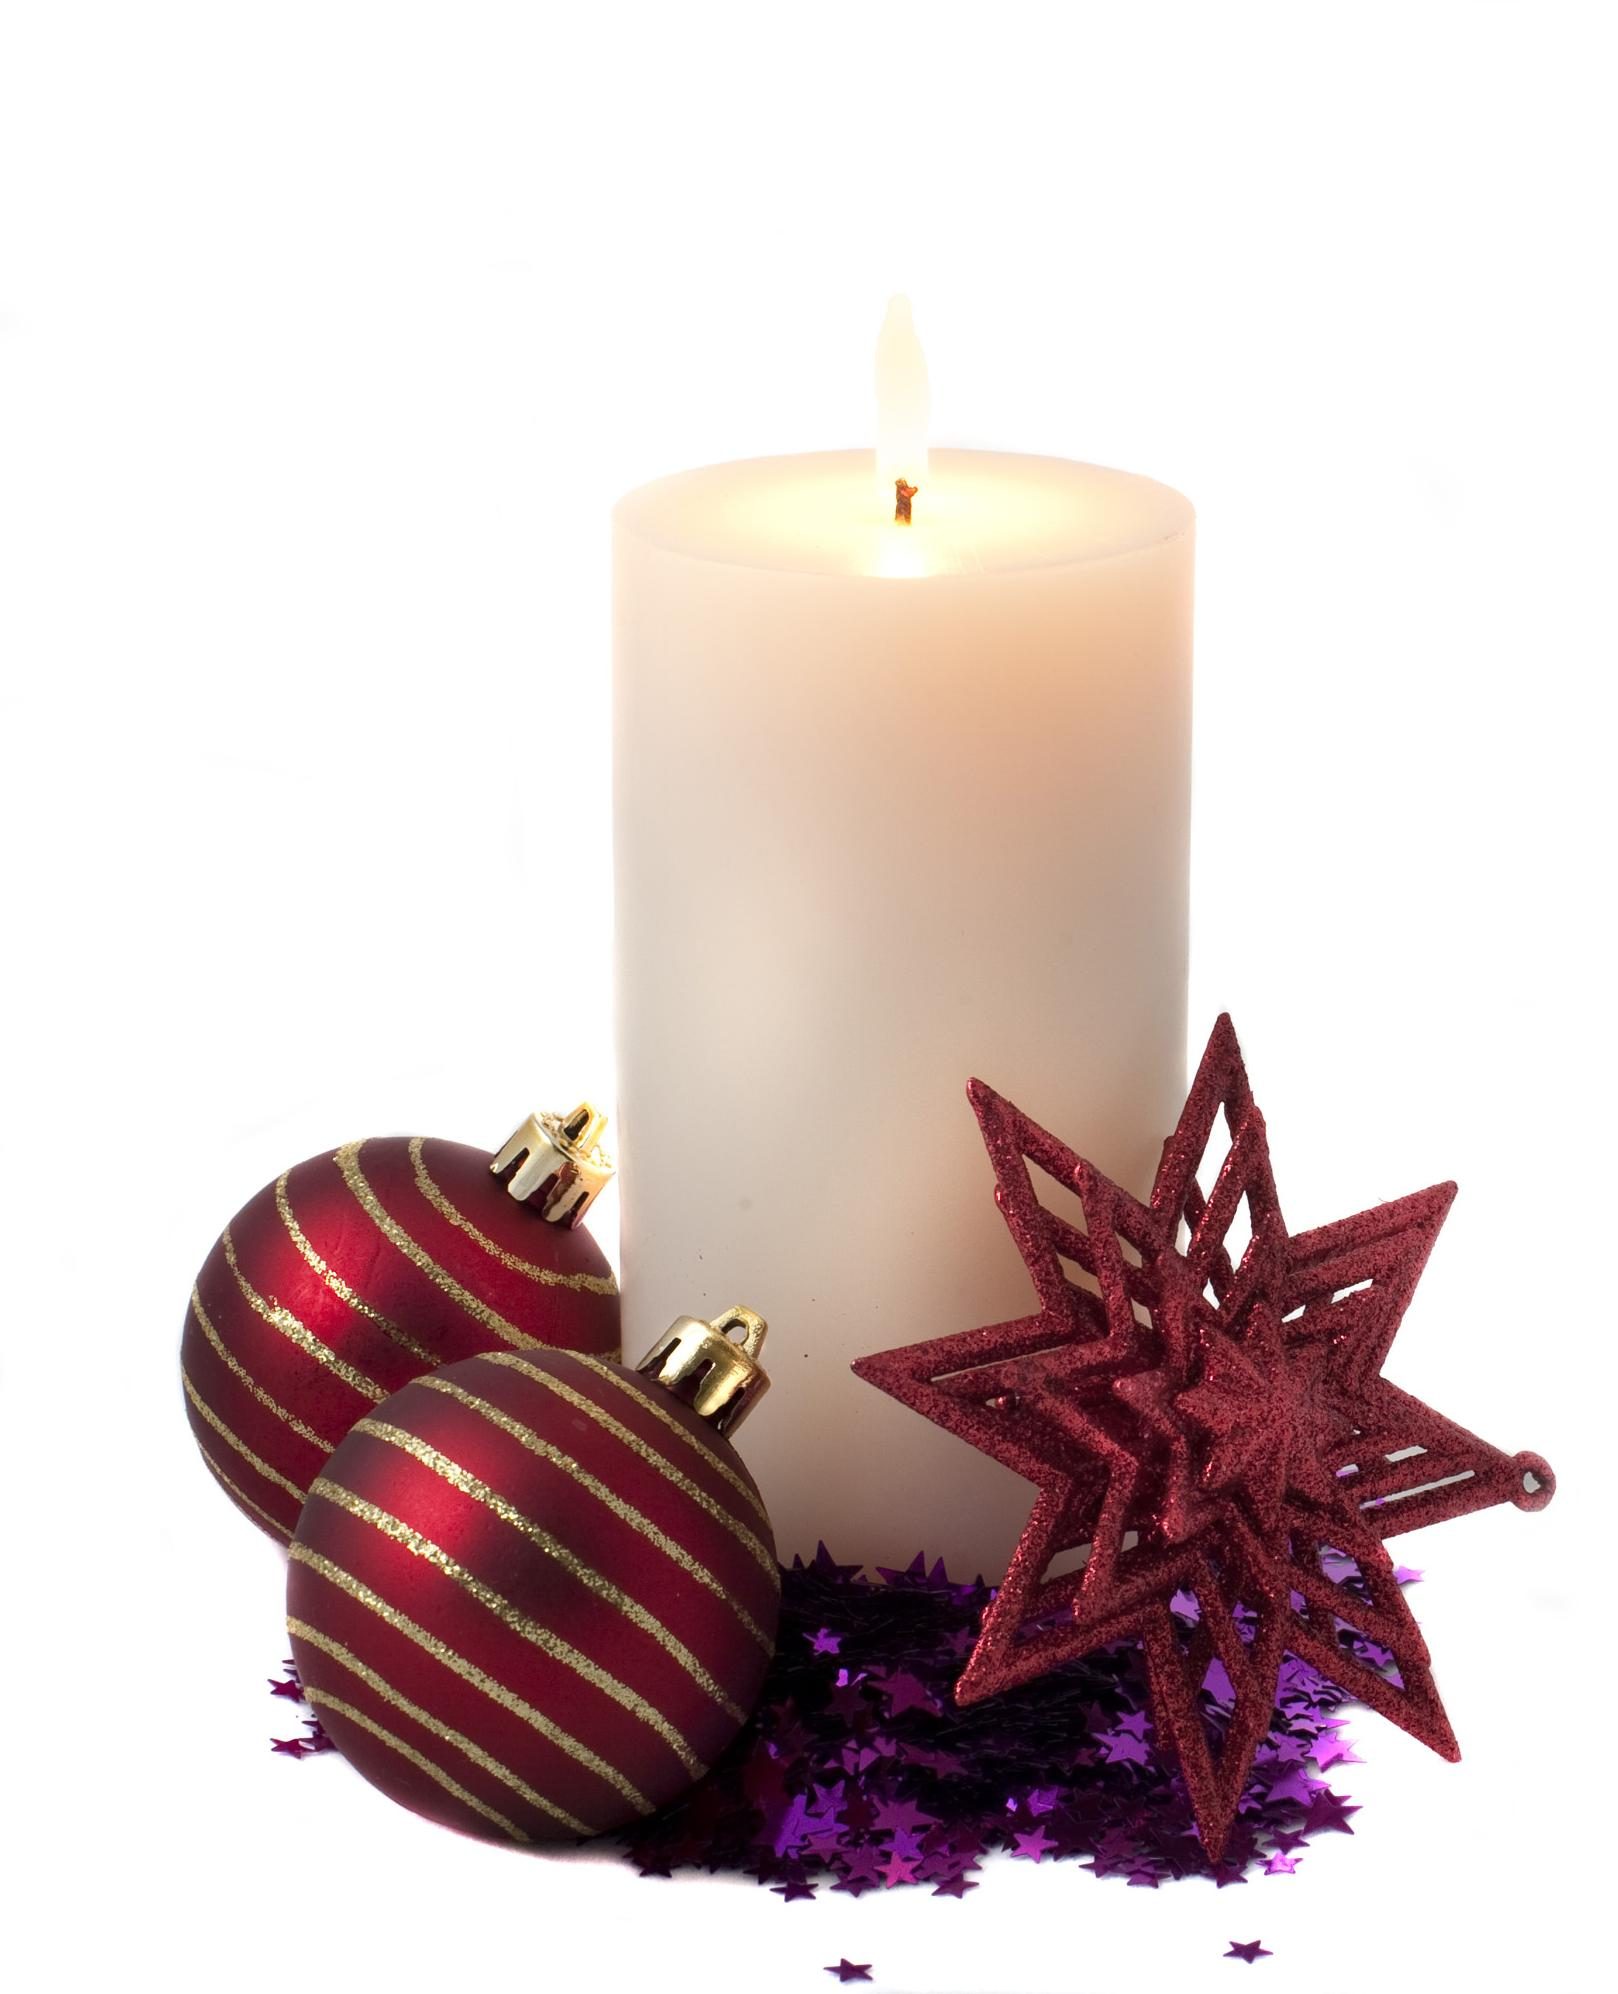 cutout candle by christmasstockimages.com CC 3.0 Unported License